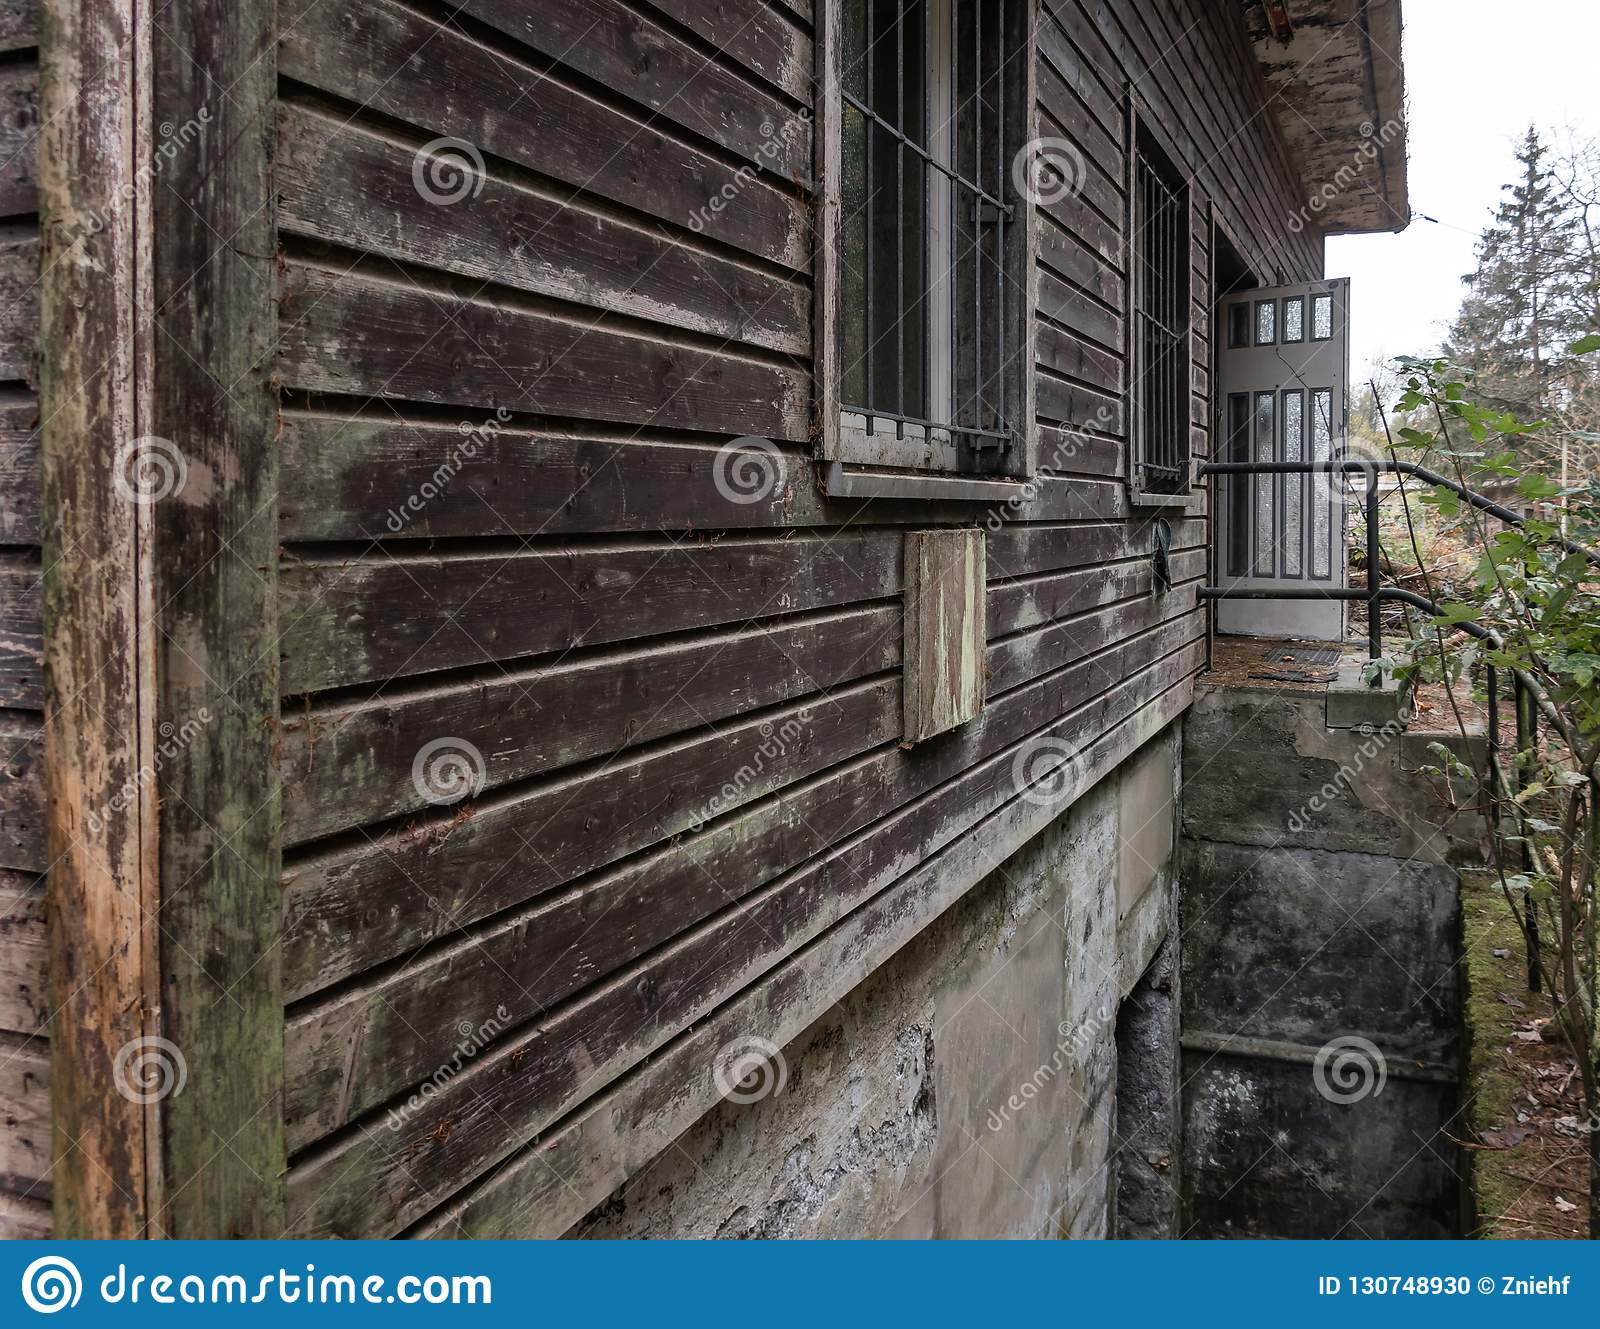 Brown weathered facade of an old abandoned wooden house in the mountains, close-up view from the house corner.